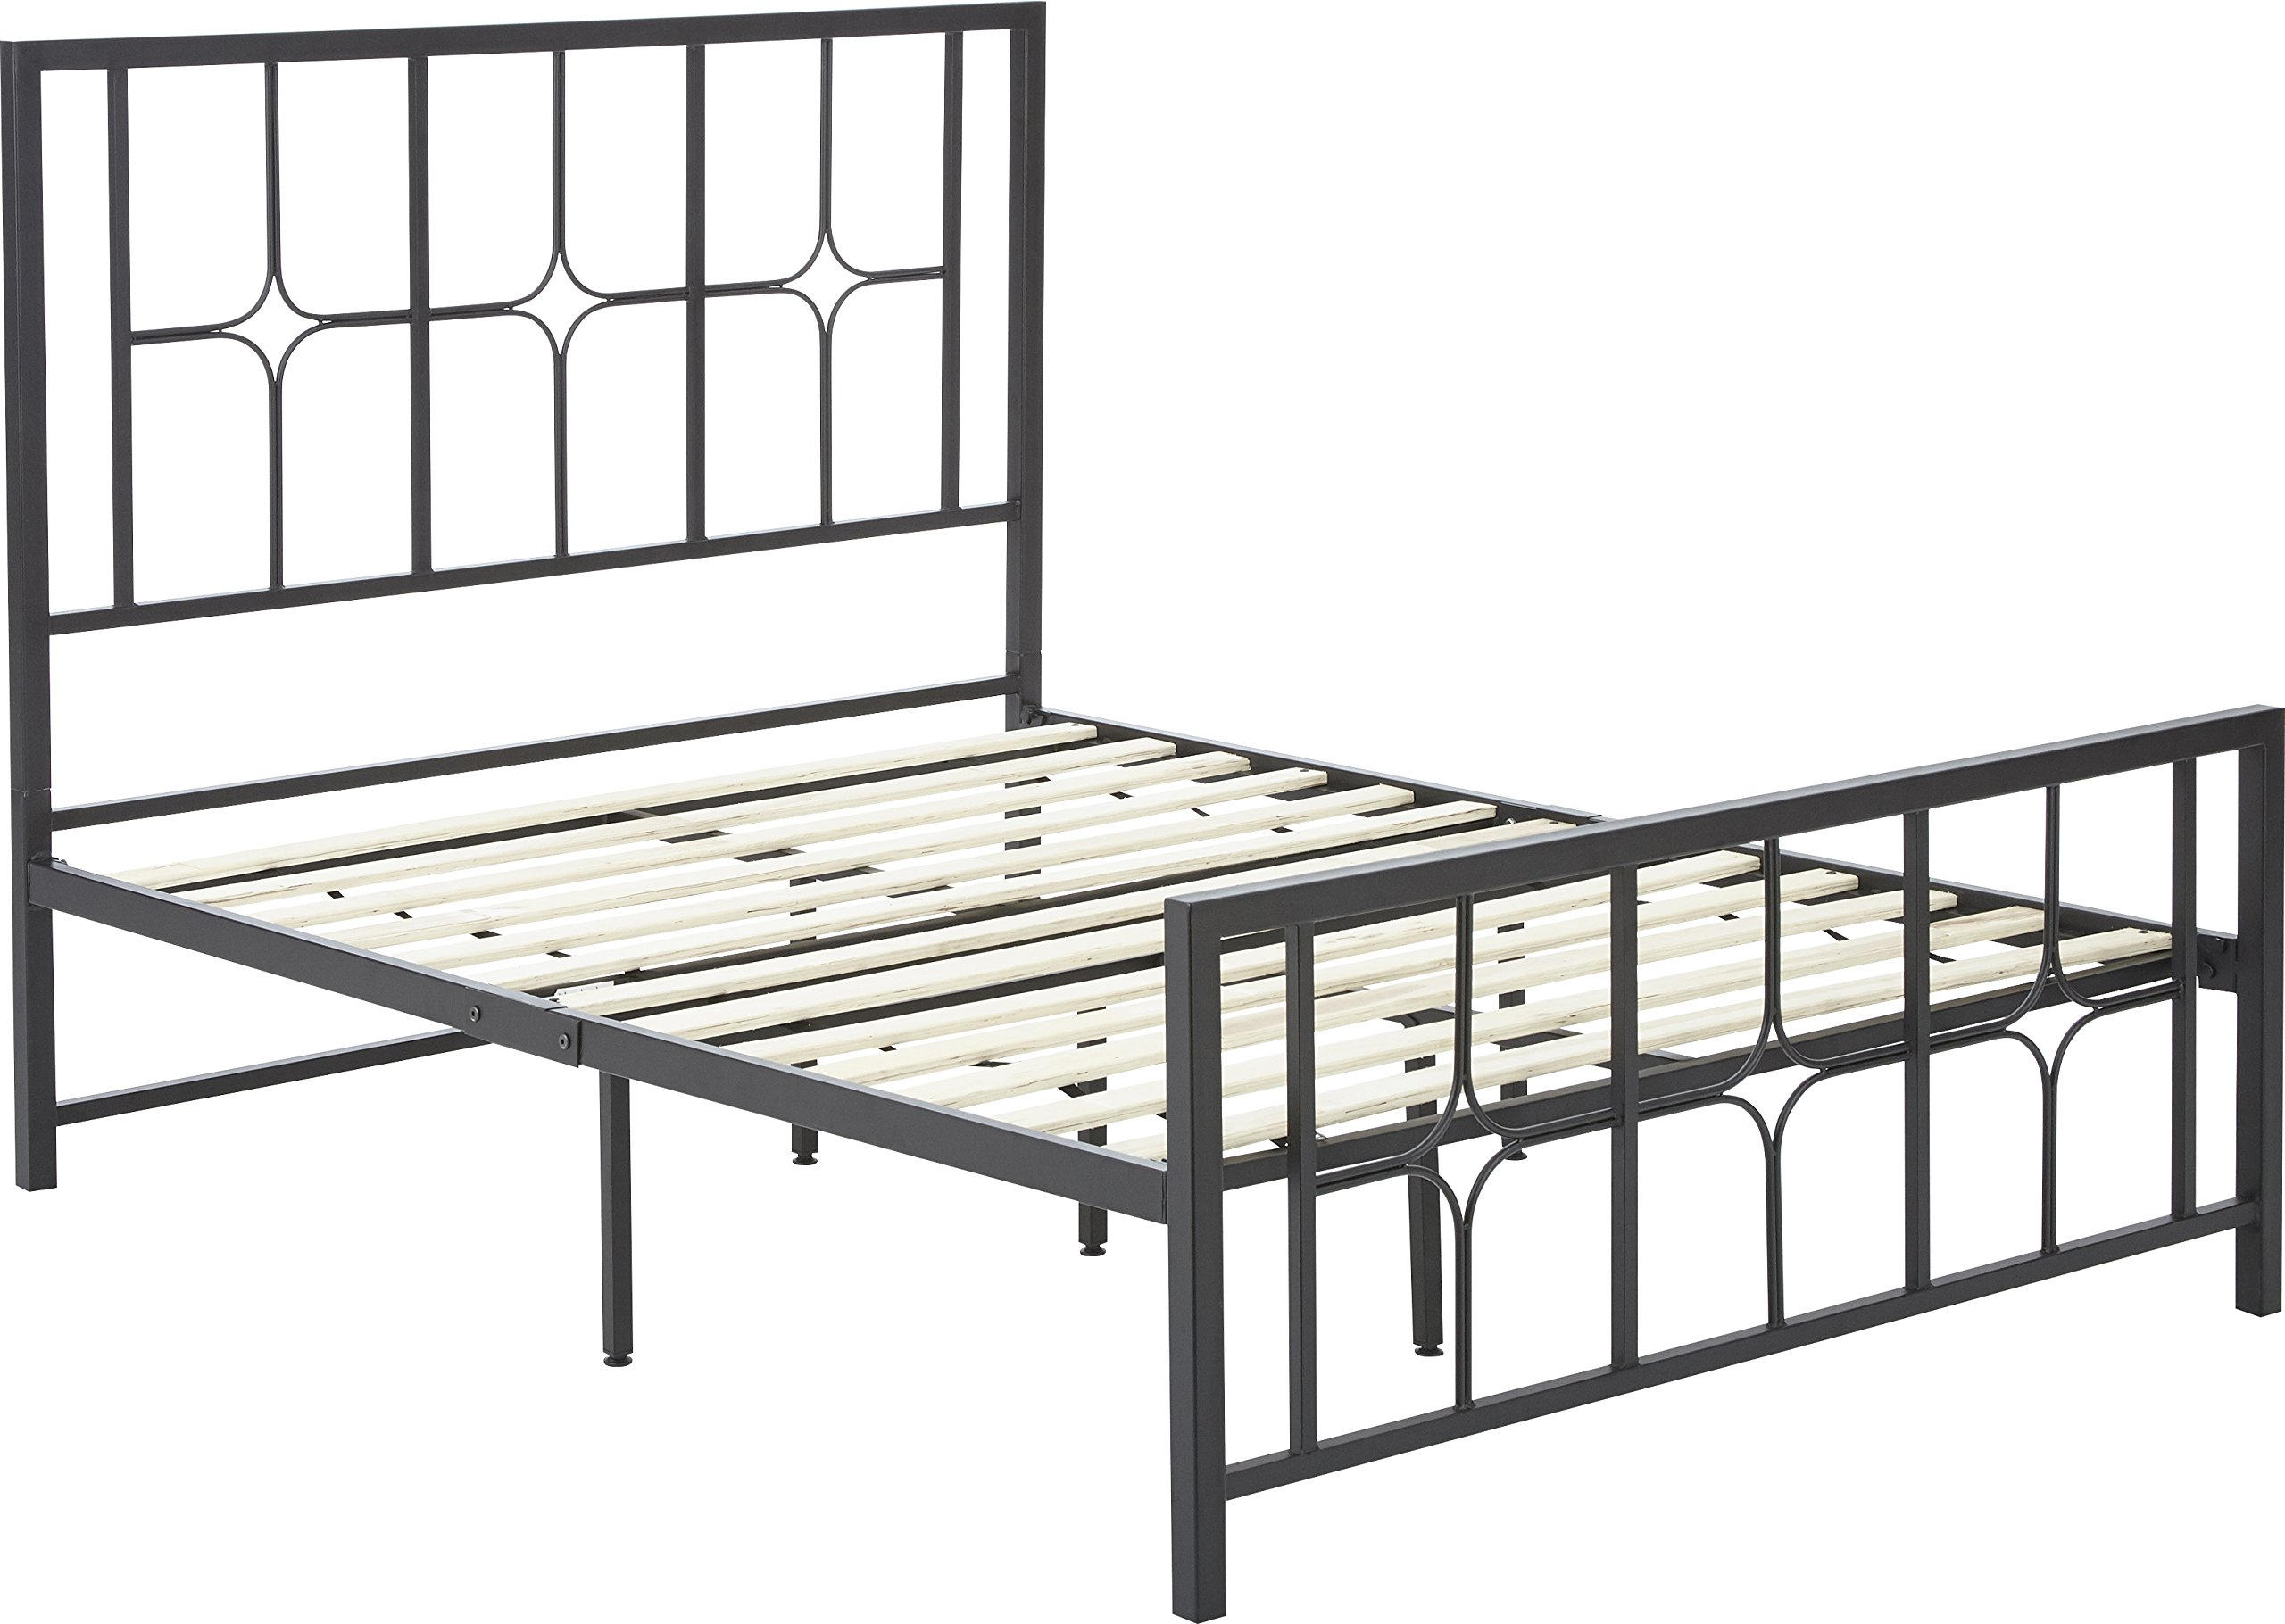 Flex Form Lydia Metal Platform Bed Frame / Mattress Foundation with Headboard and Footboard, King